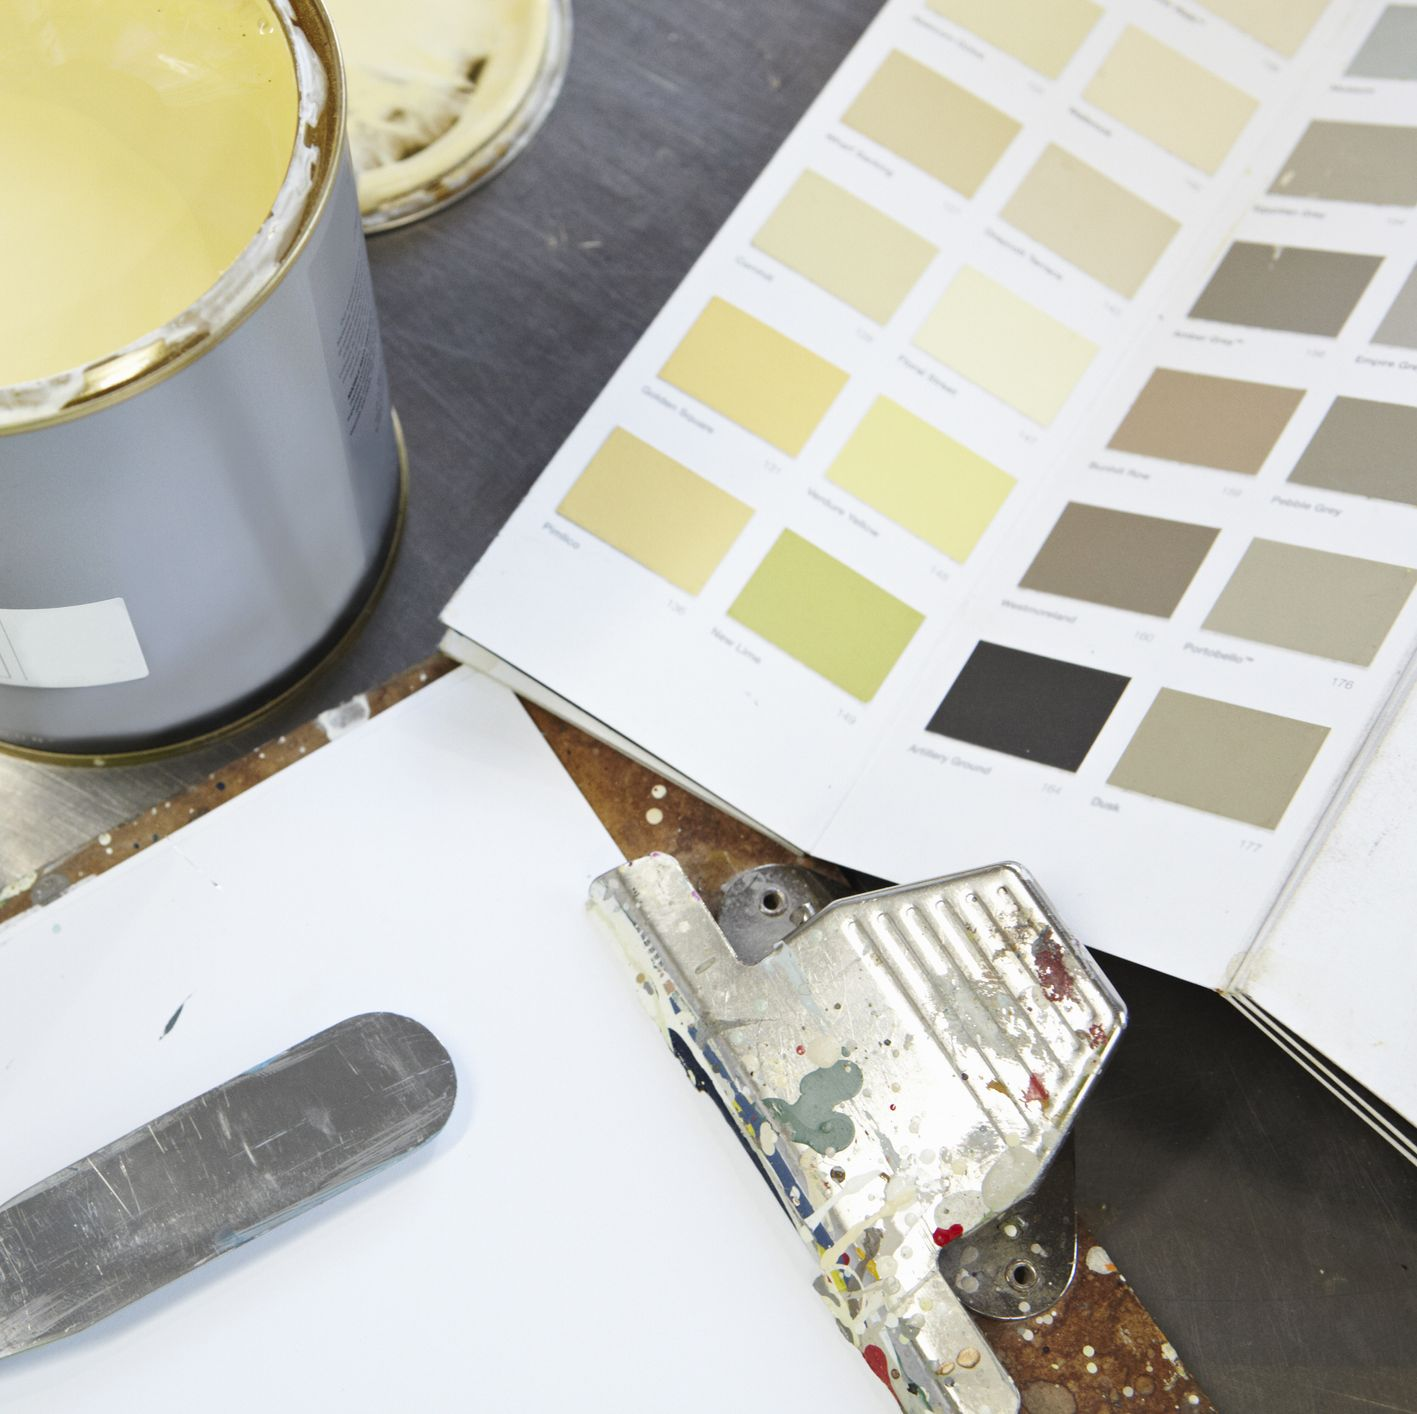 Ready For A Paint Makeover? Here's What You Need To Know About Primer